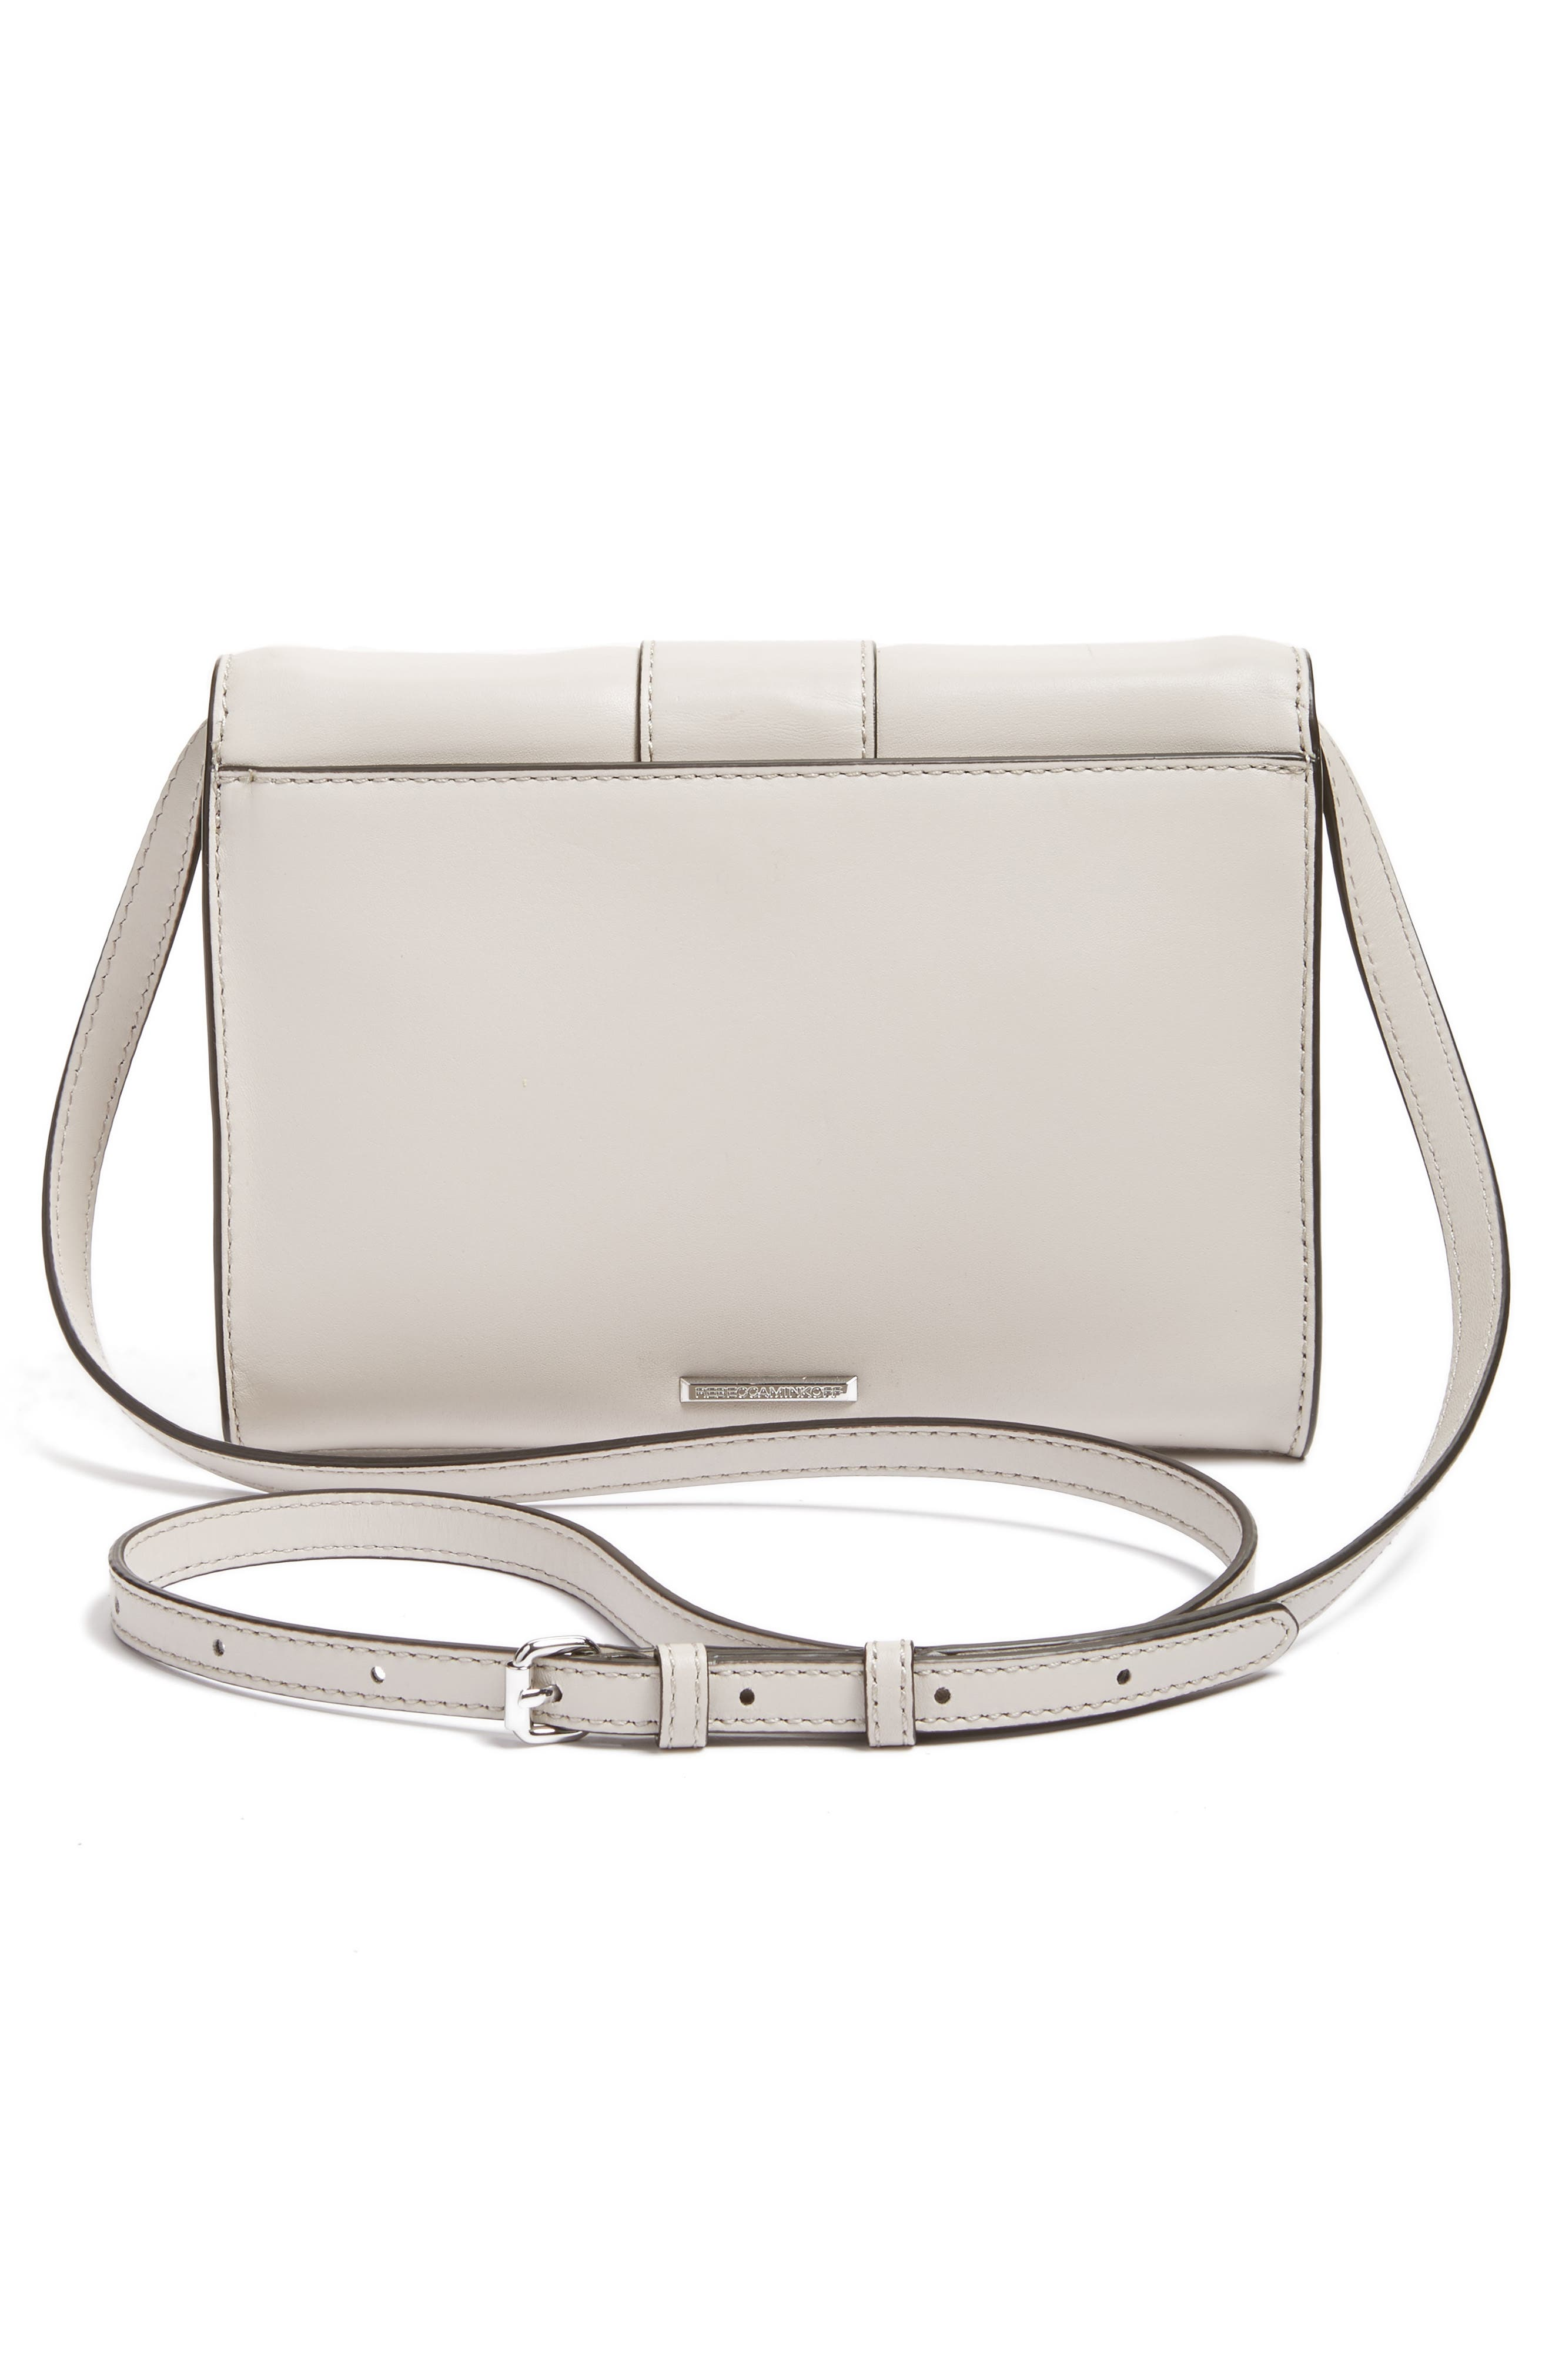 Hook Up Convertible Leather Clutch,                             Alternate thumbnail 3, color,                             Putty/ Silver